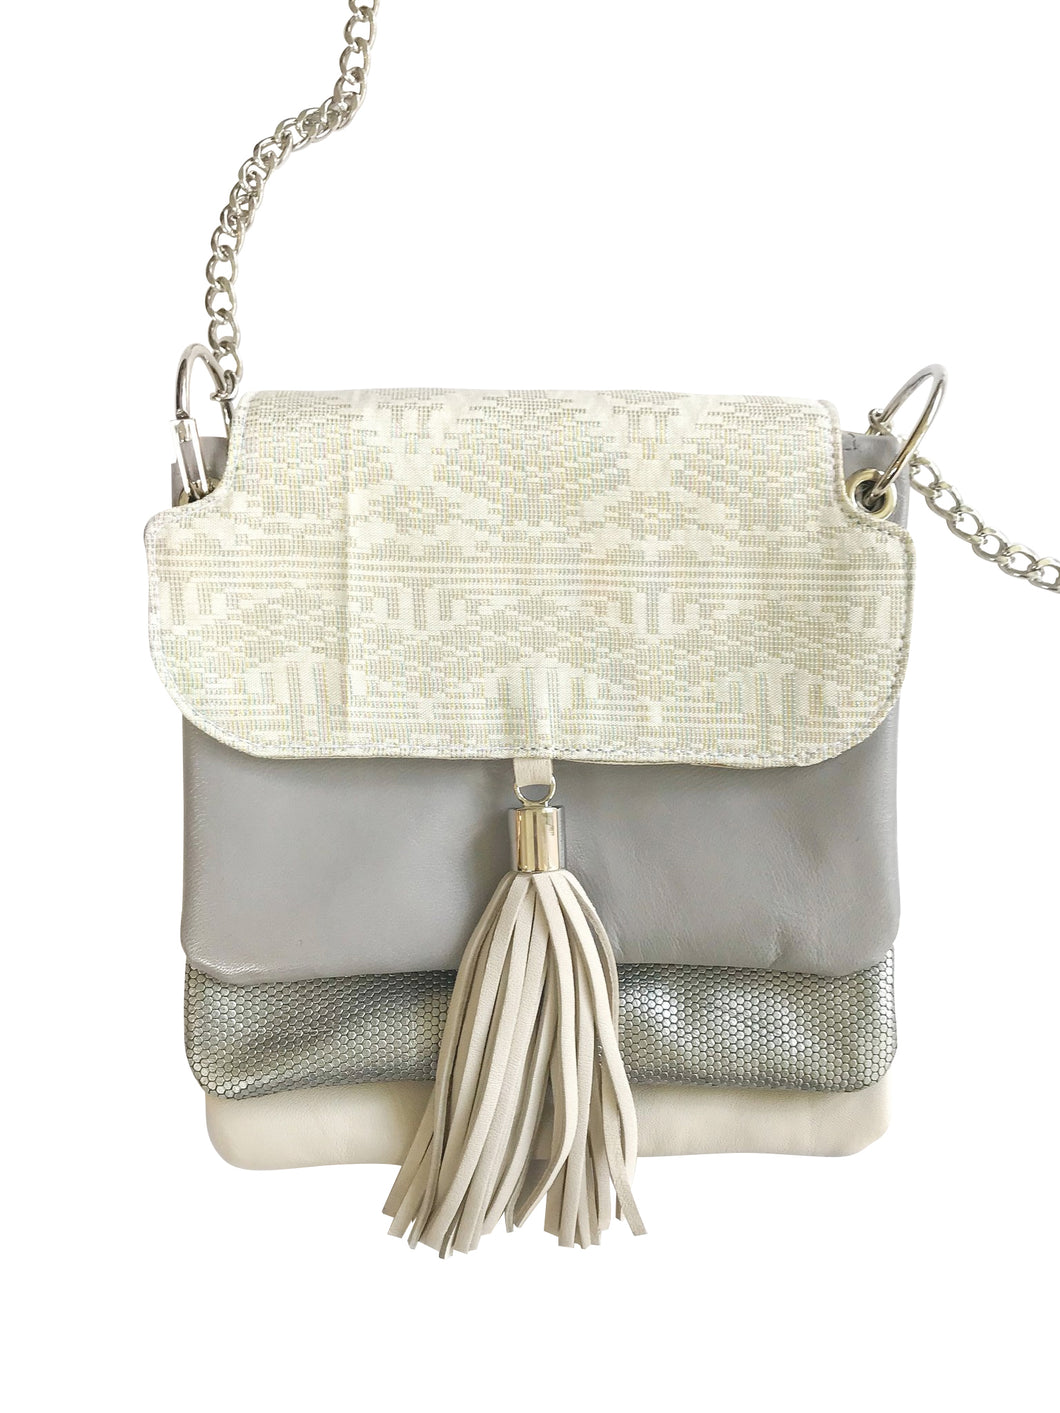 Lapis Bag (Gray + Silver)